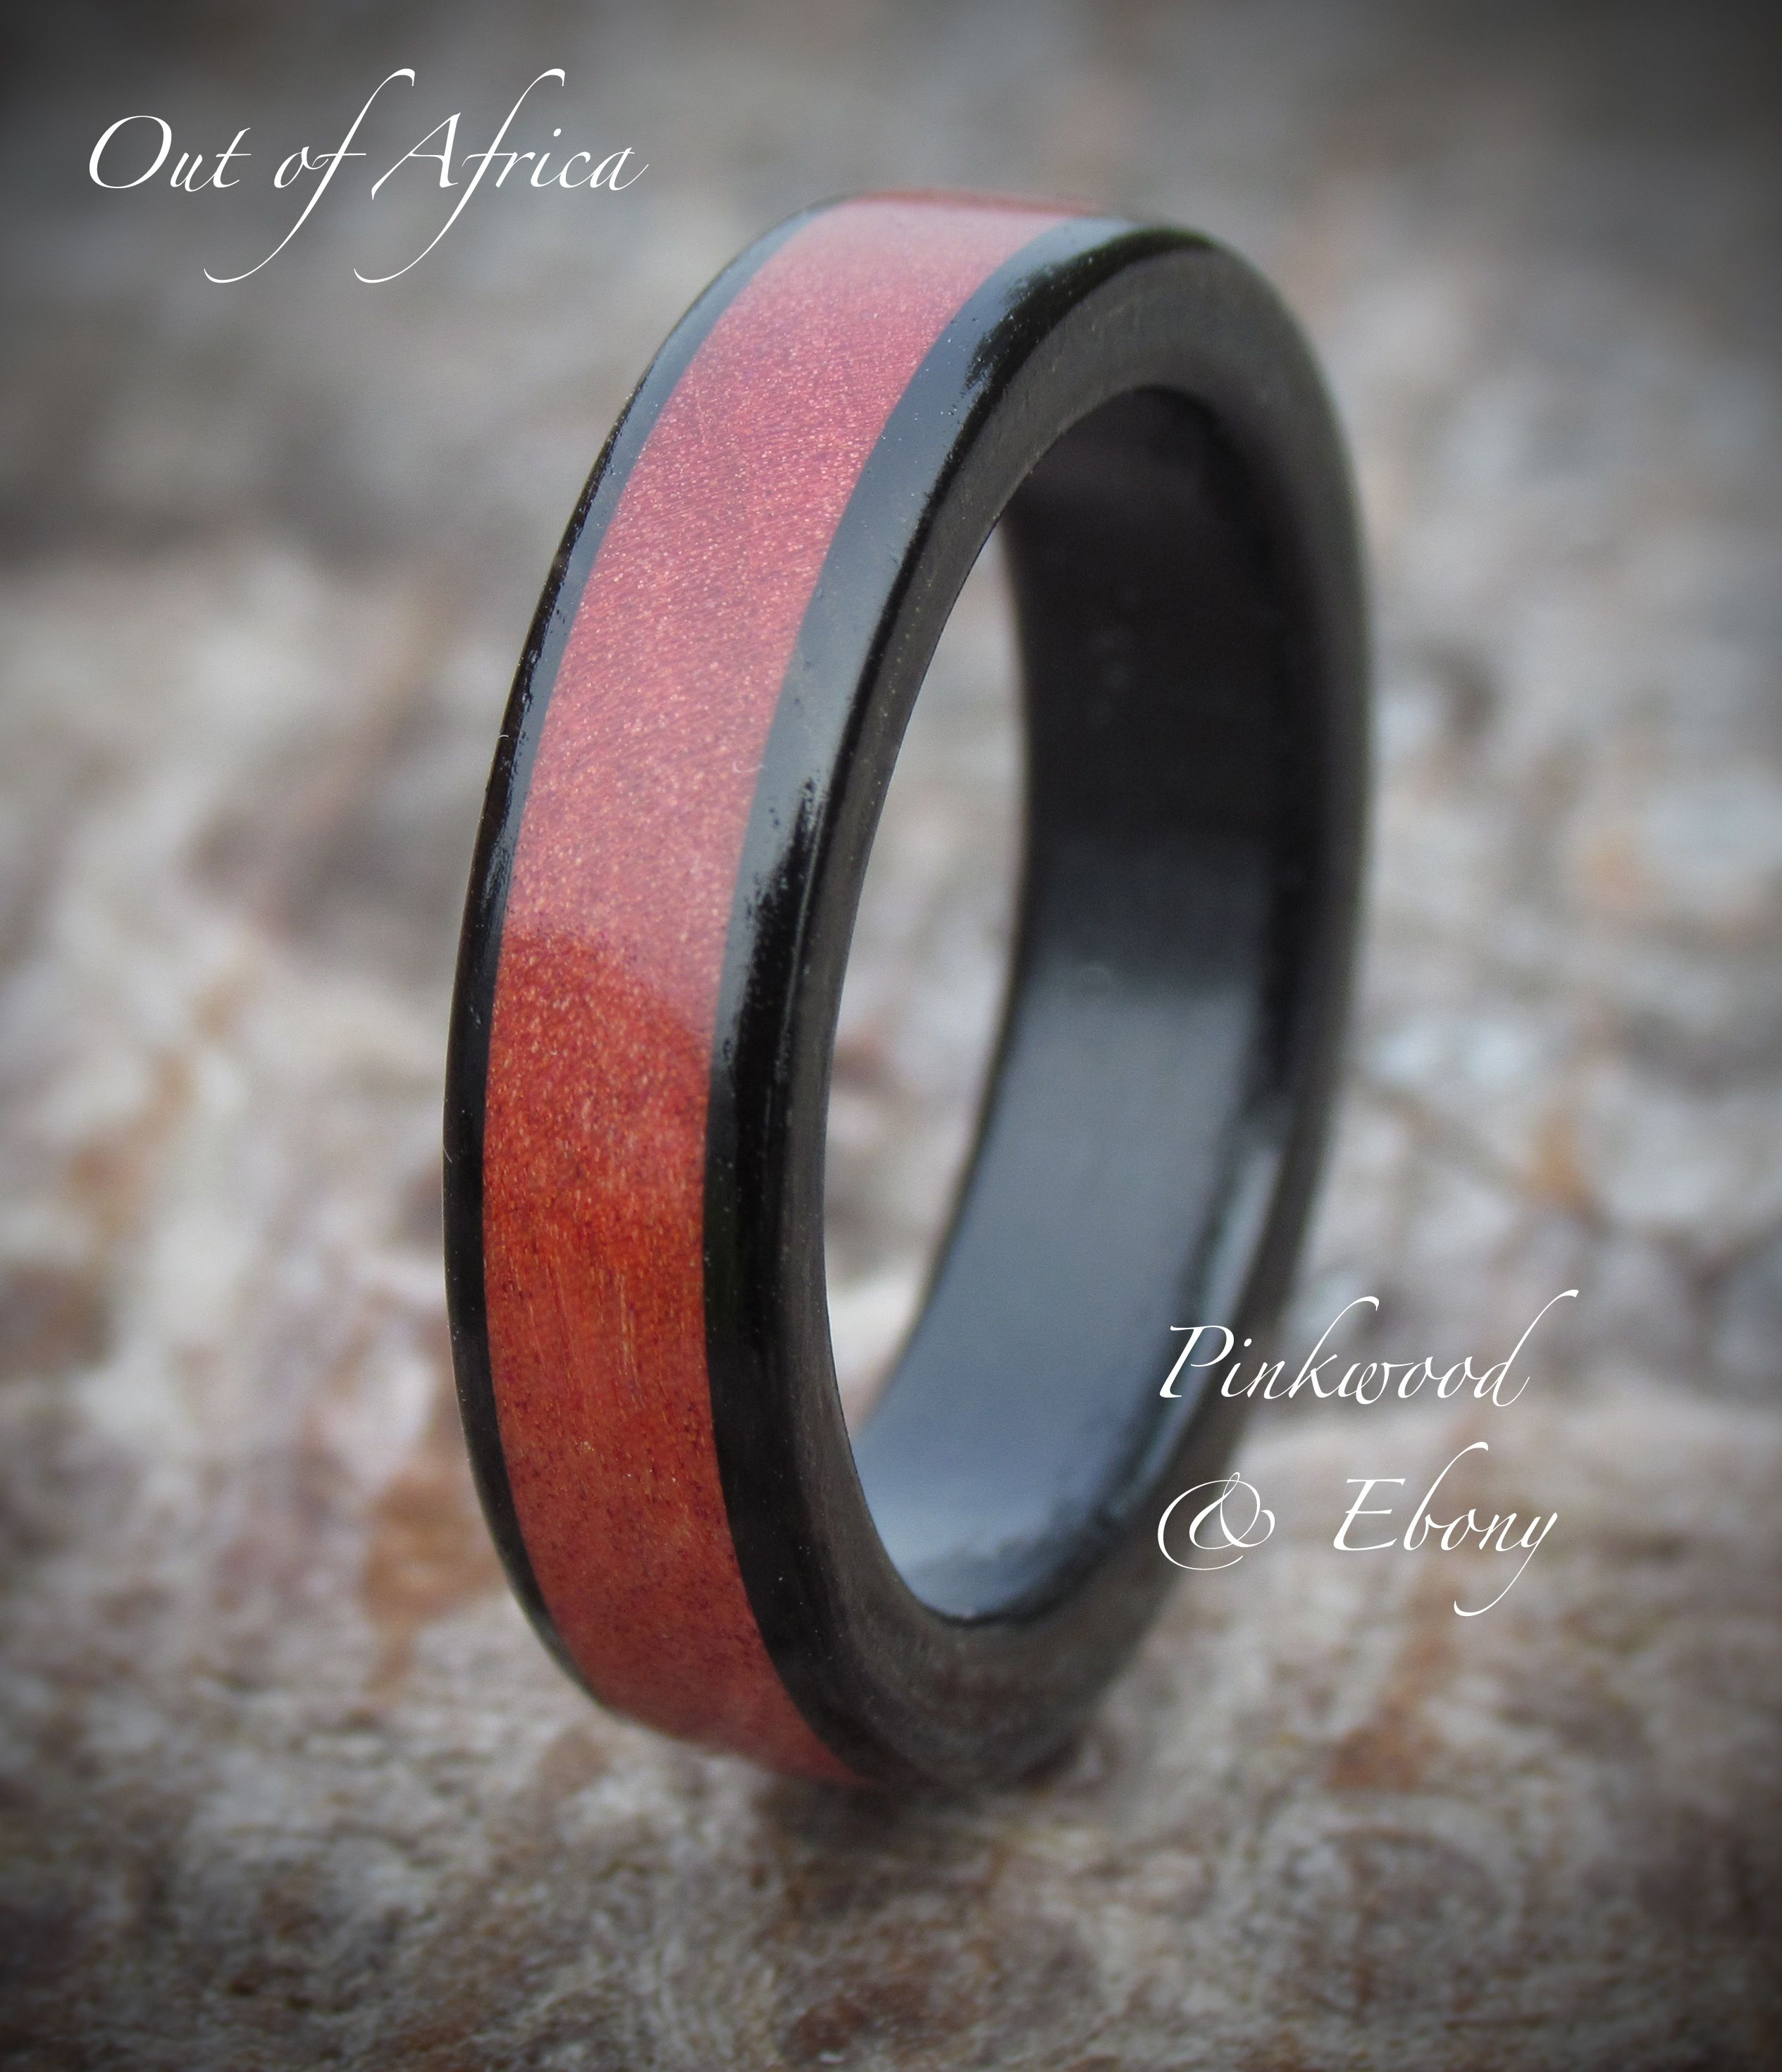 Out Of Africa Wooden Ring Handcrafted From Ebony Pinkwood Perfect As A Wedding: African Wood Wedding Rings At Reisefeber.org